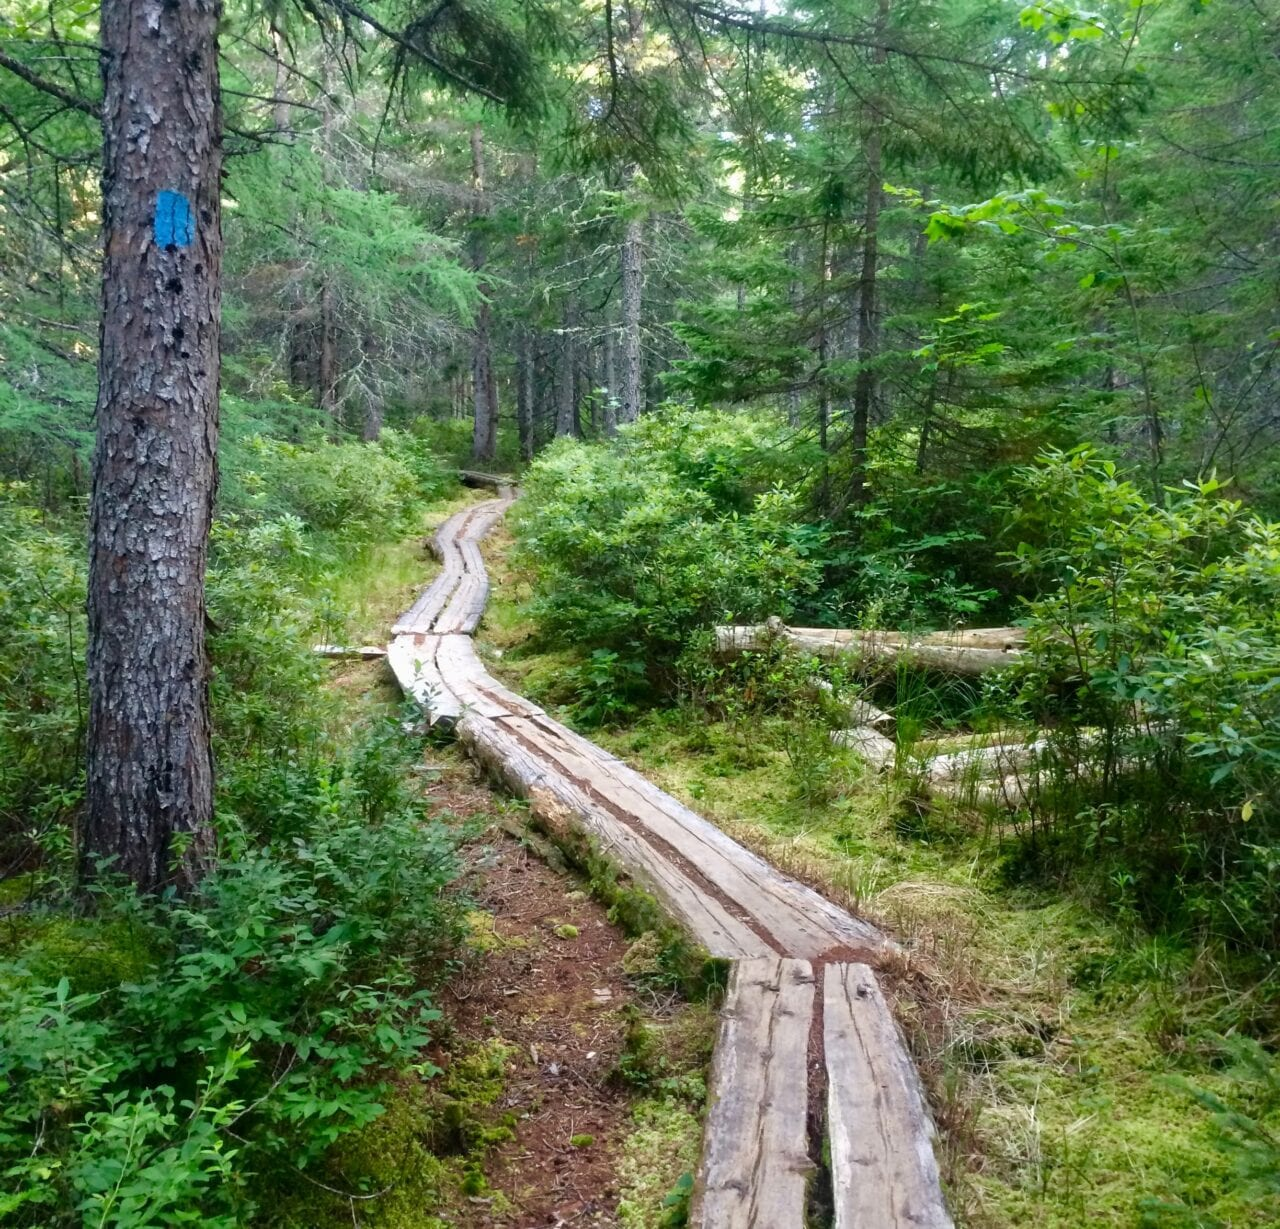 A wooden boardwalk winds through a dense green forest.